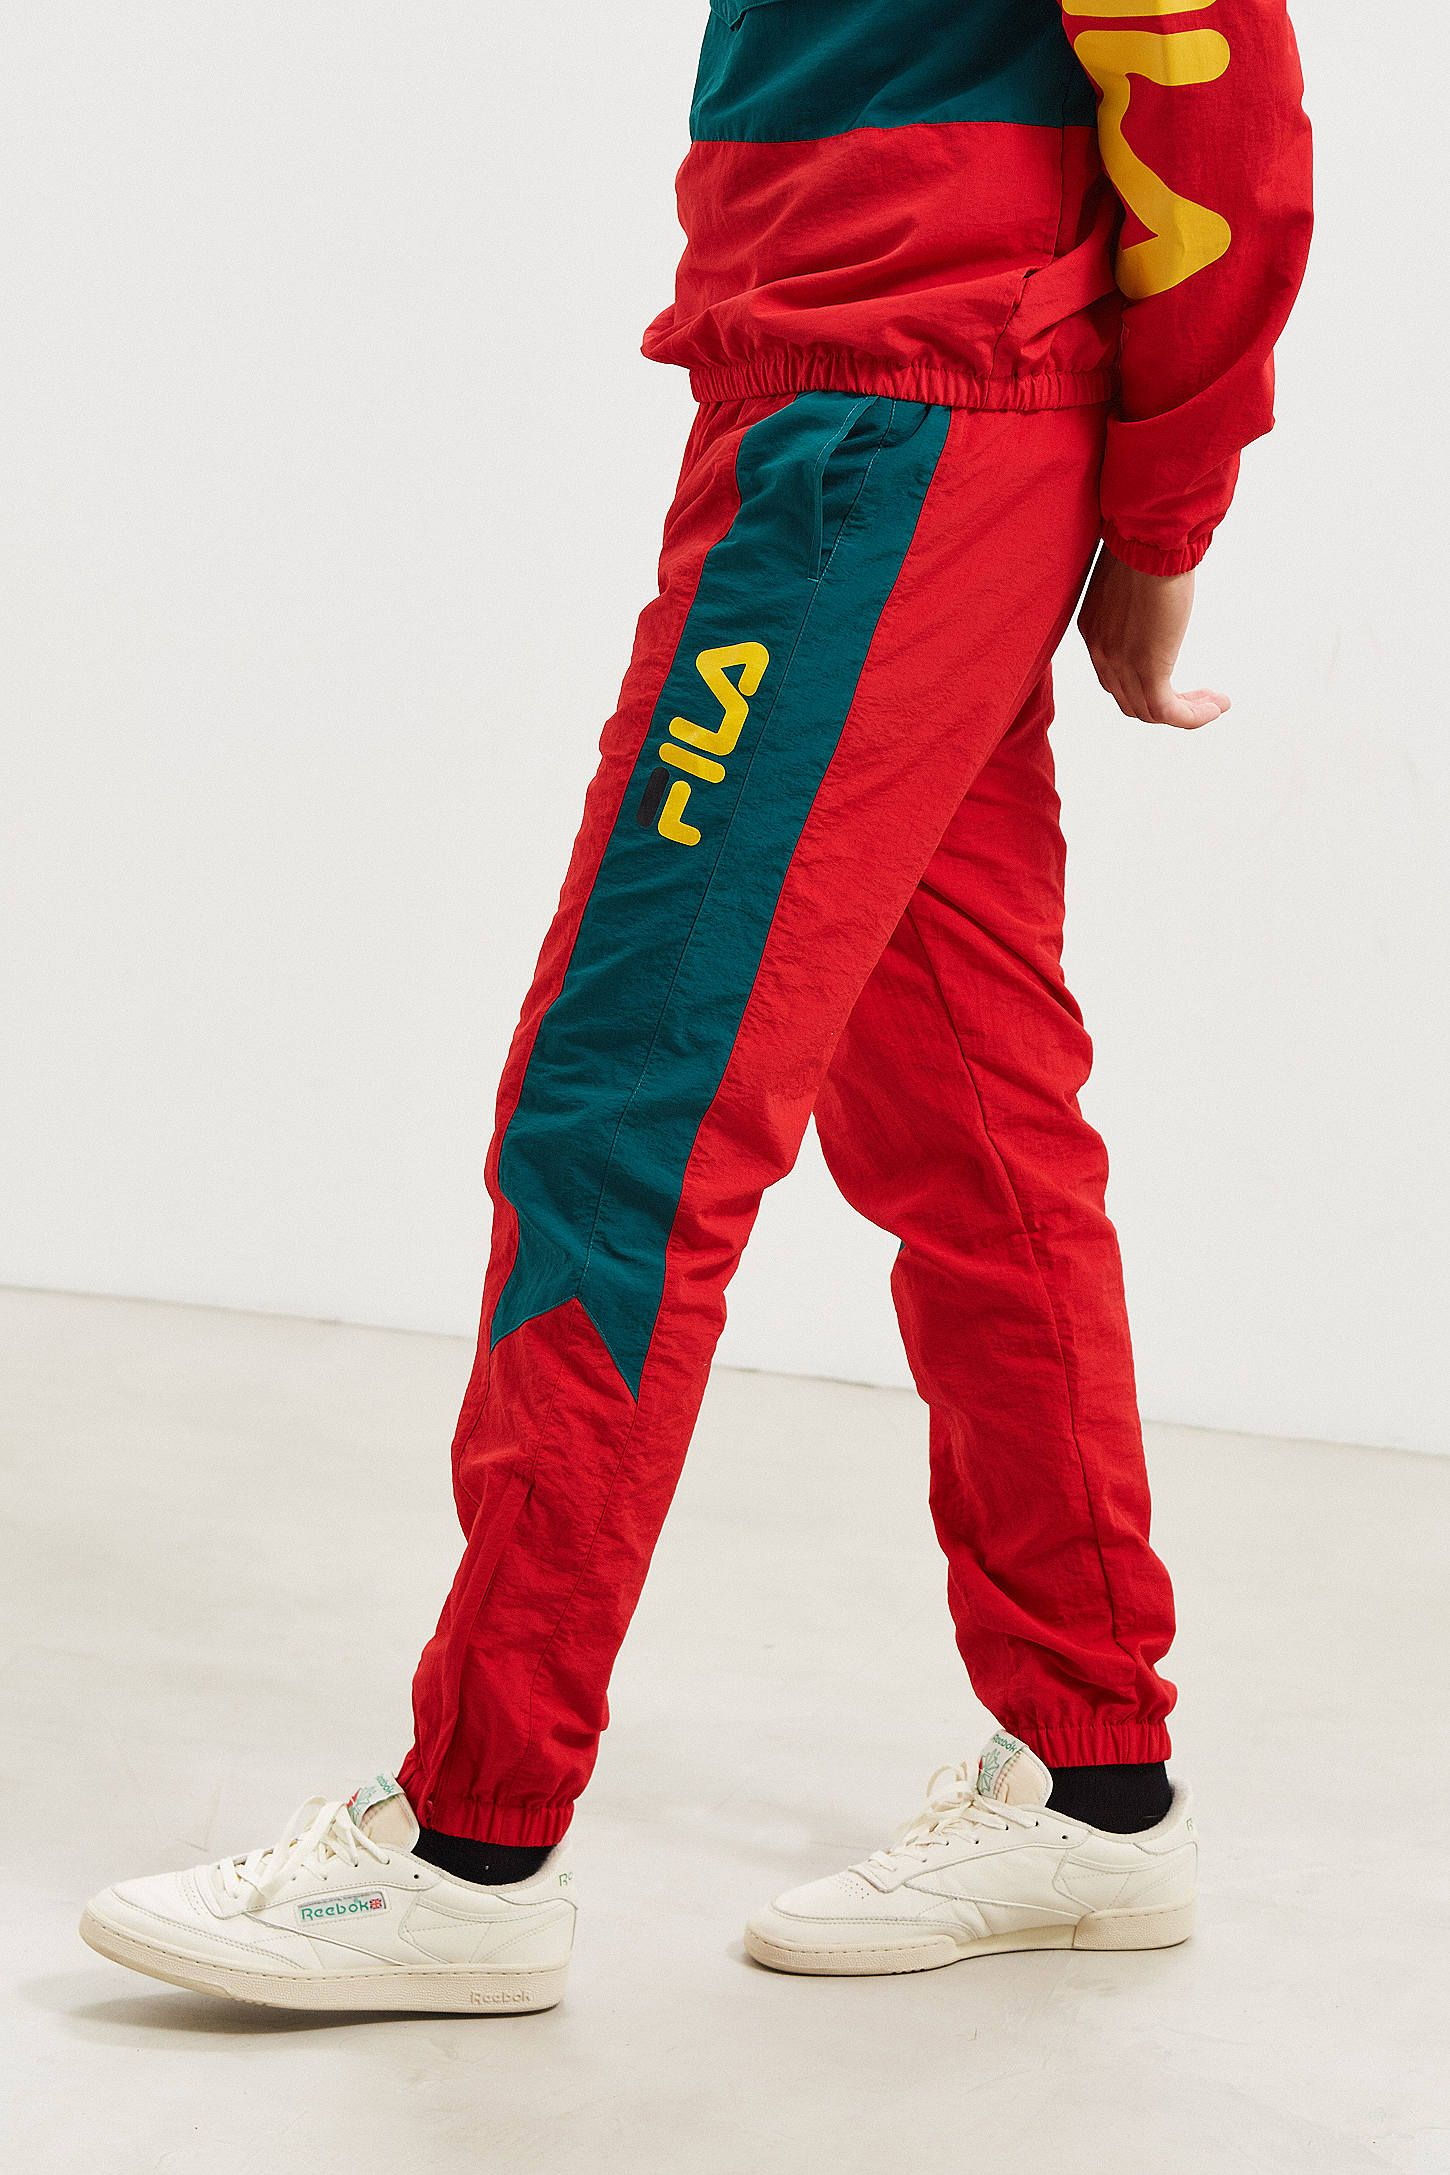 d4199df34d8418 Shop FILA + UO Barnet Wind Pant at Urban Outfitters today. We carry all the  latest styles